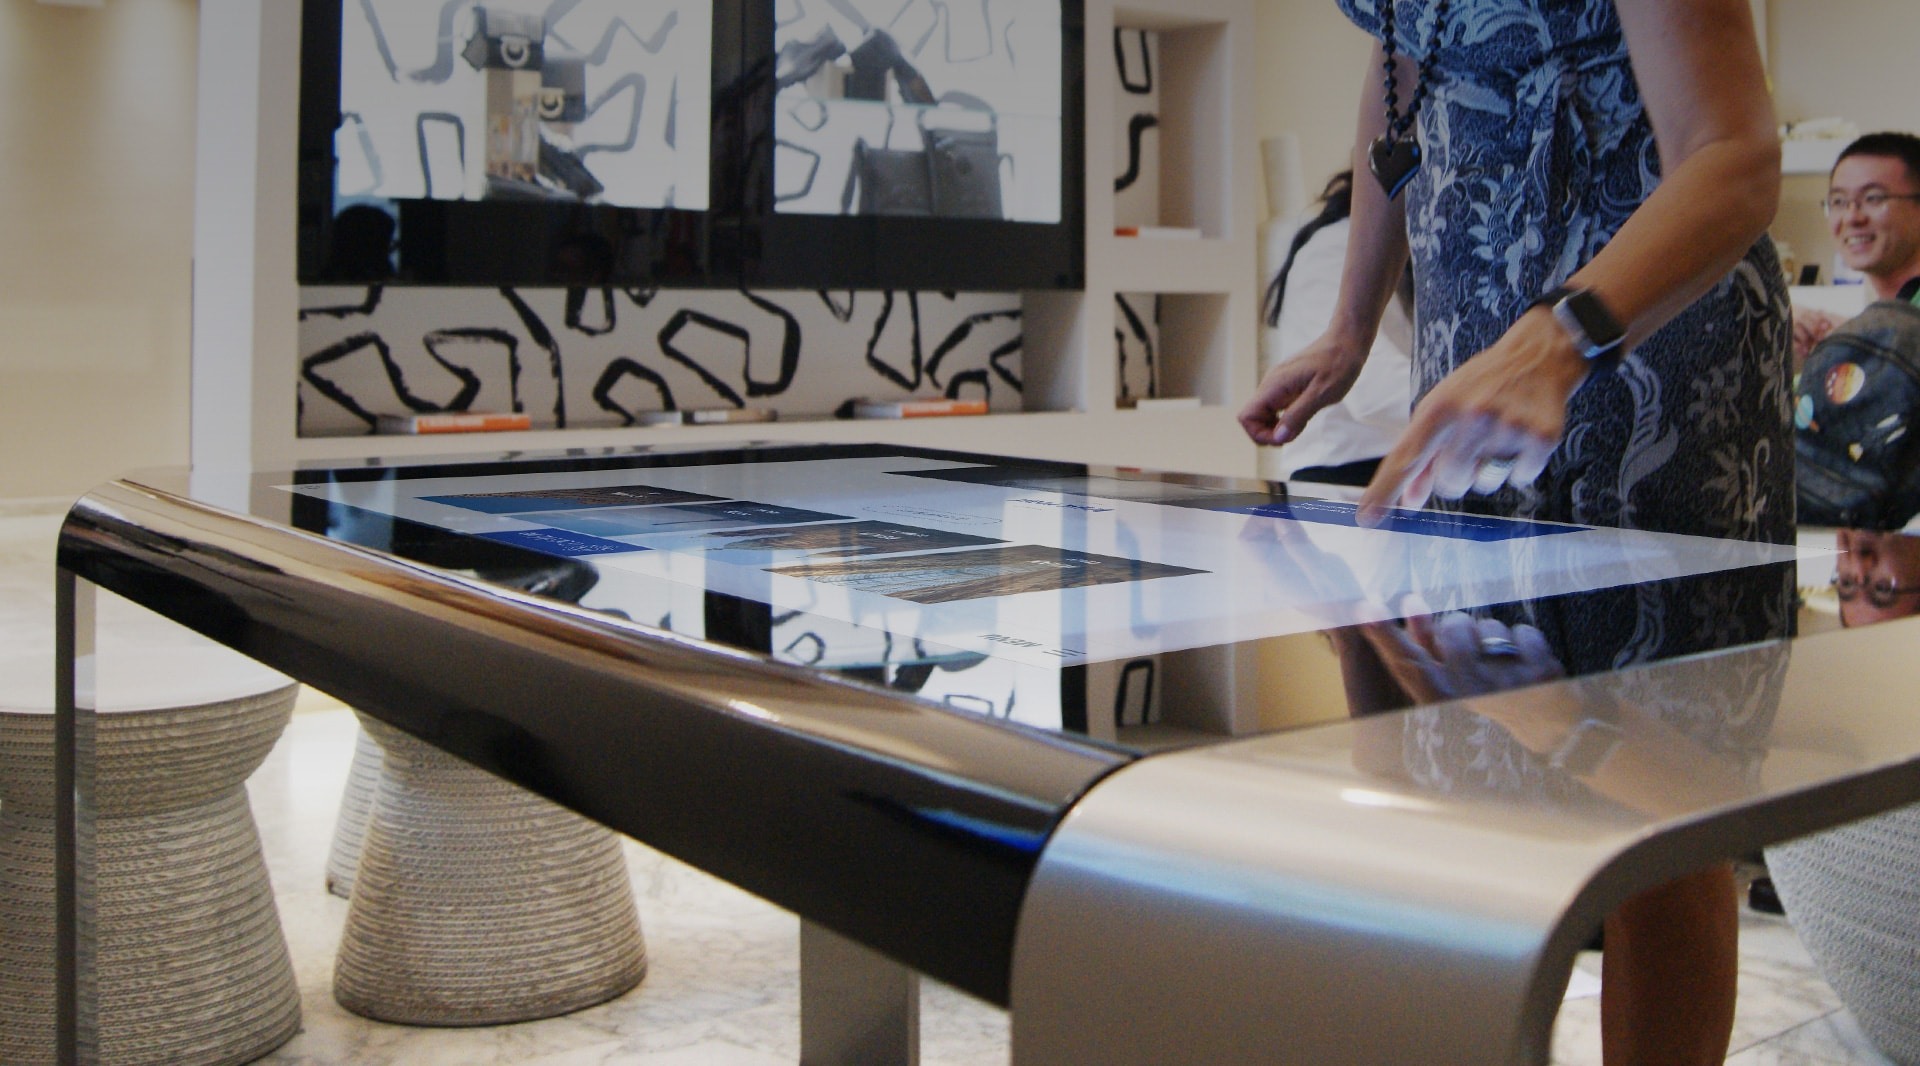 The first multitouch table by Danilo Cascella